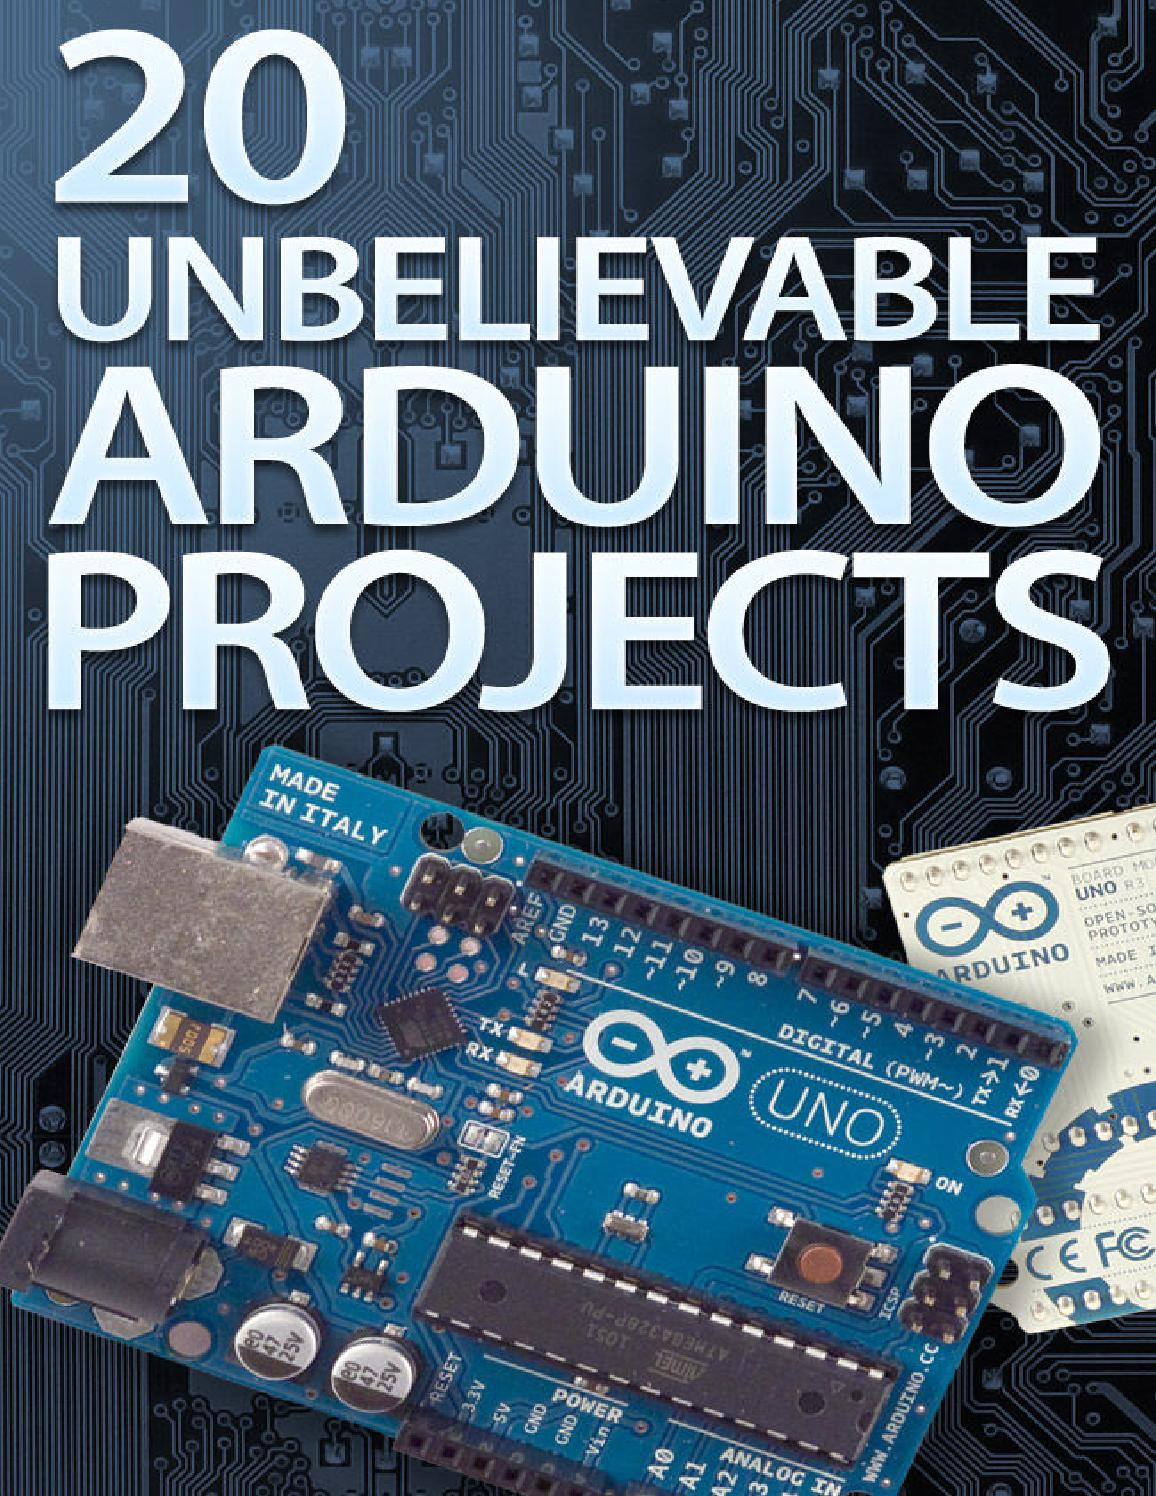 Fritzing Diagram Of Hbridge And 2 Dc Motors On An Arduino Flickr 20 Unbelievable Projects By Paginas Web Gratis Issuu